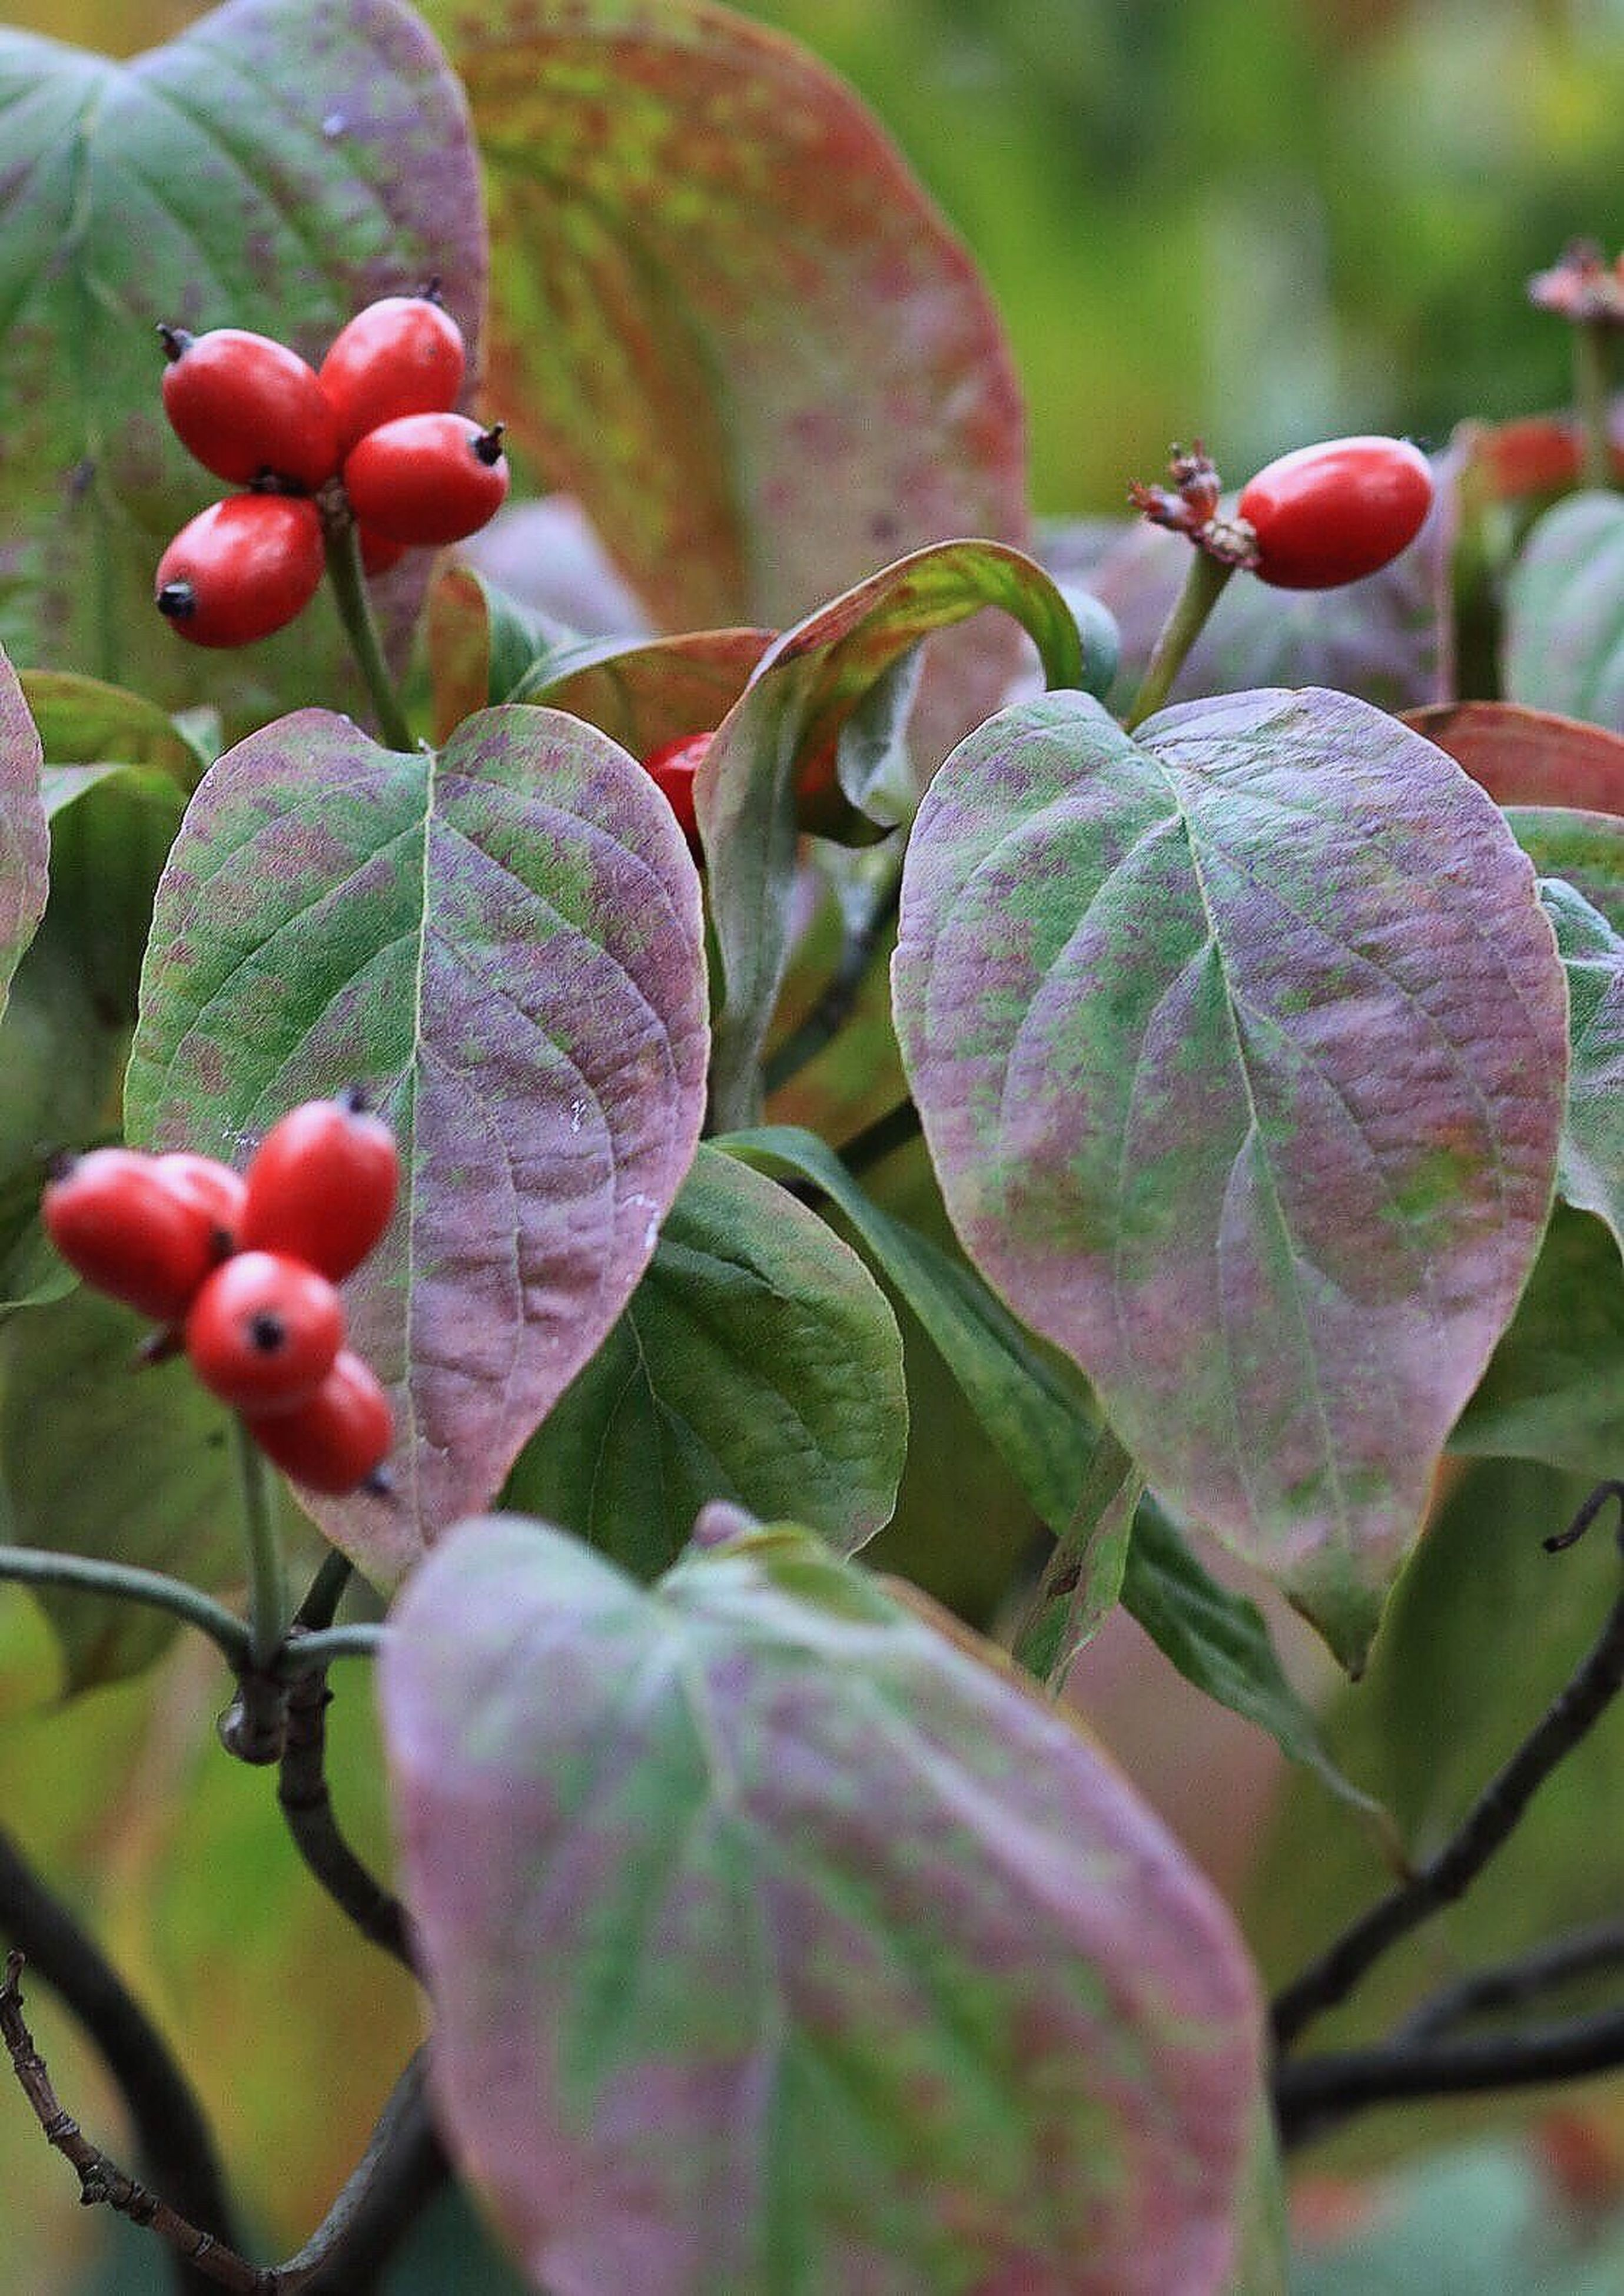 leaf, close-up, growth, plant, freshness, green color, focus on foreground, nature, beauty in nature, day, red, fragility, outdoors, botany, berry, plant life, green, growing, tranquility, no people